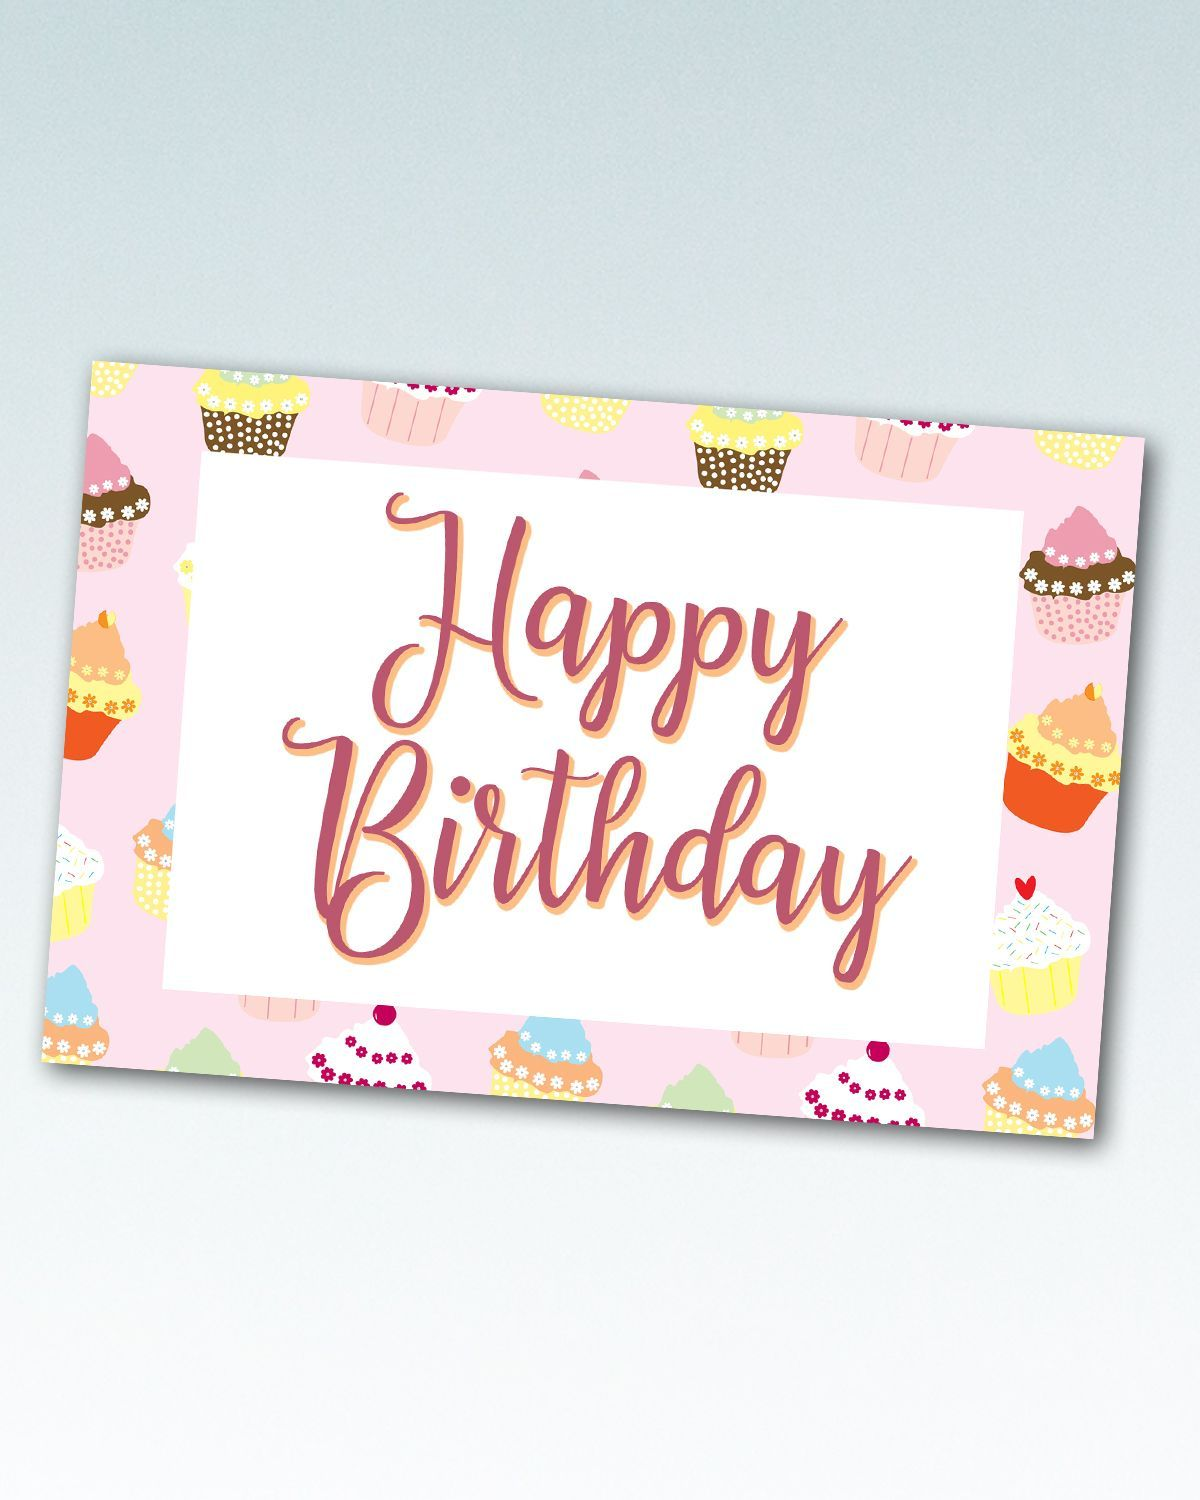 Wish Someone A Happy Birthday With A Birthday Card In The Mail Upload A Picture And Design Your V Birthday Card With Photo Birthday Cards Happy Birthday Cards